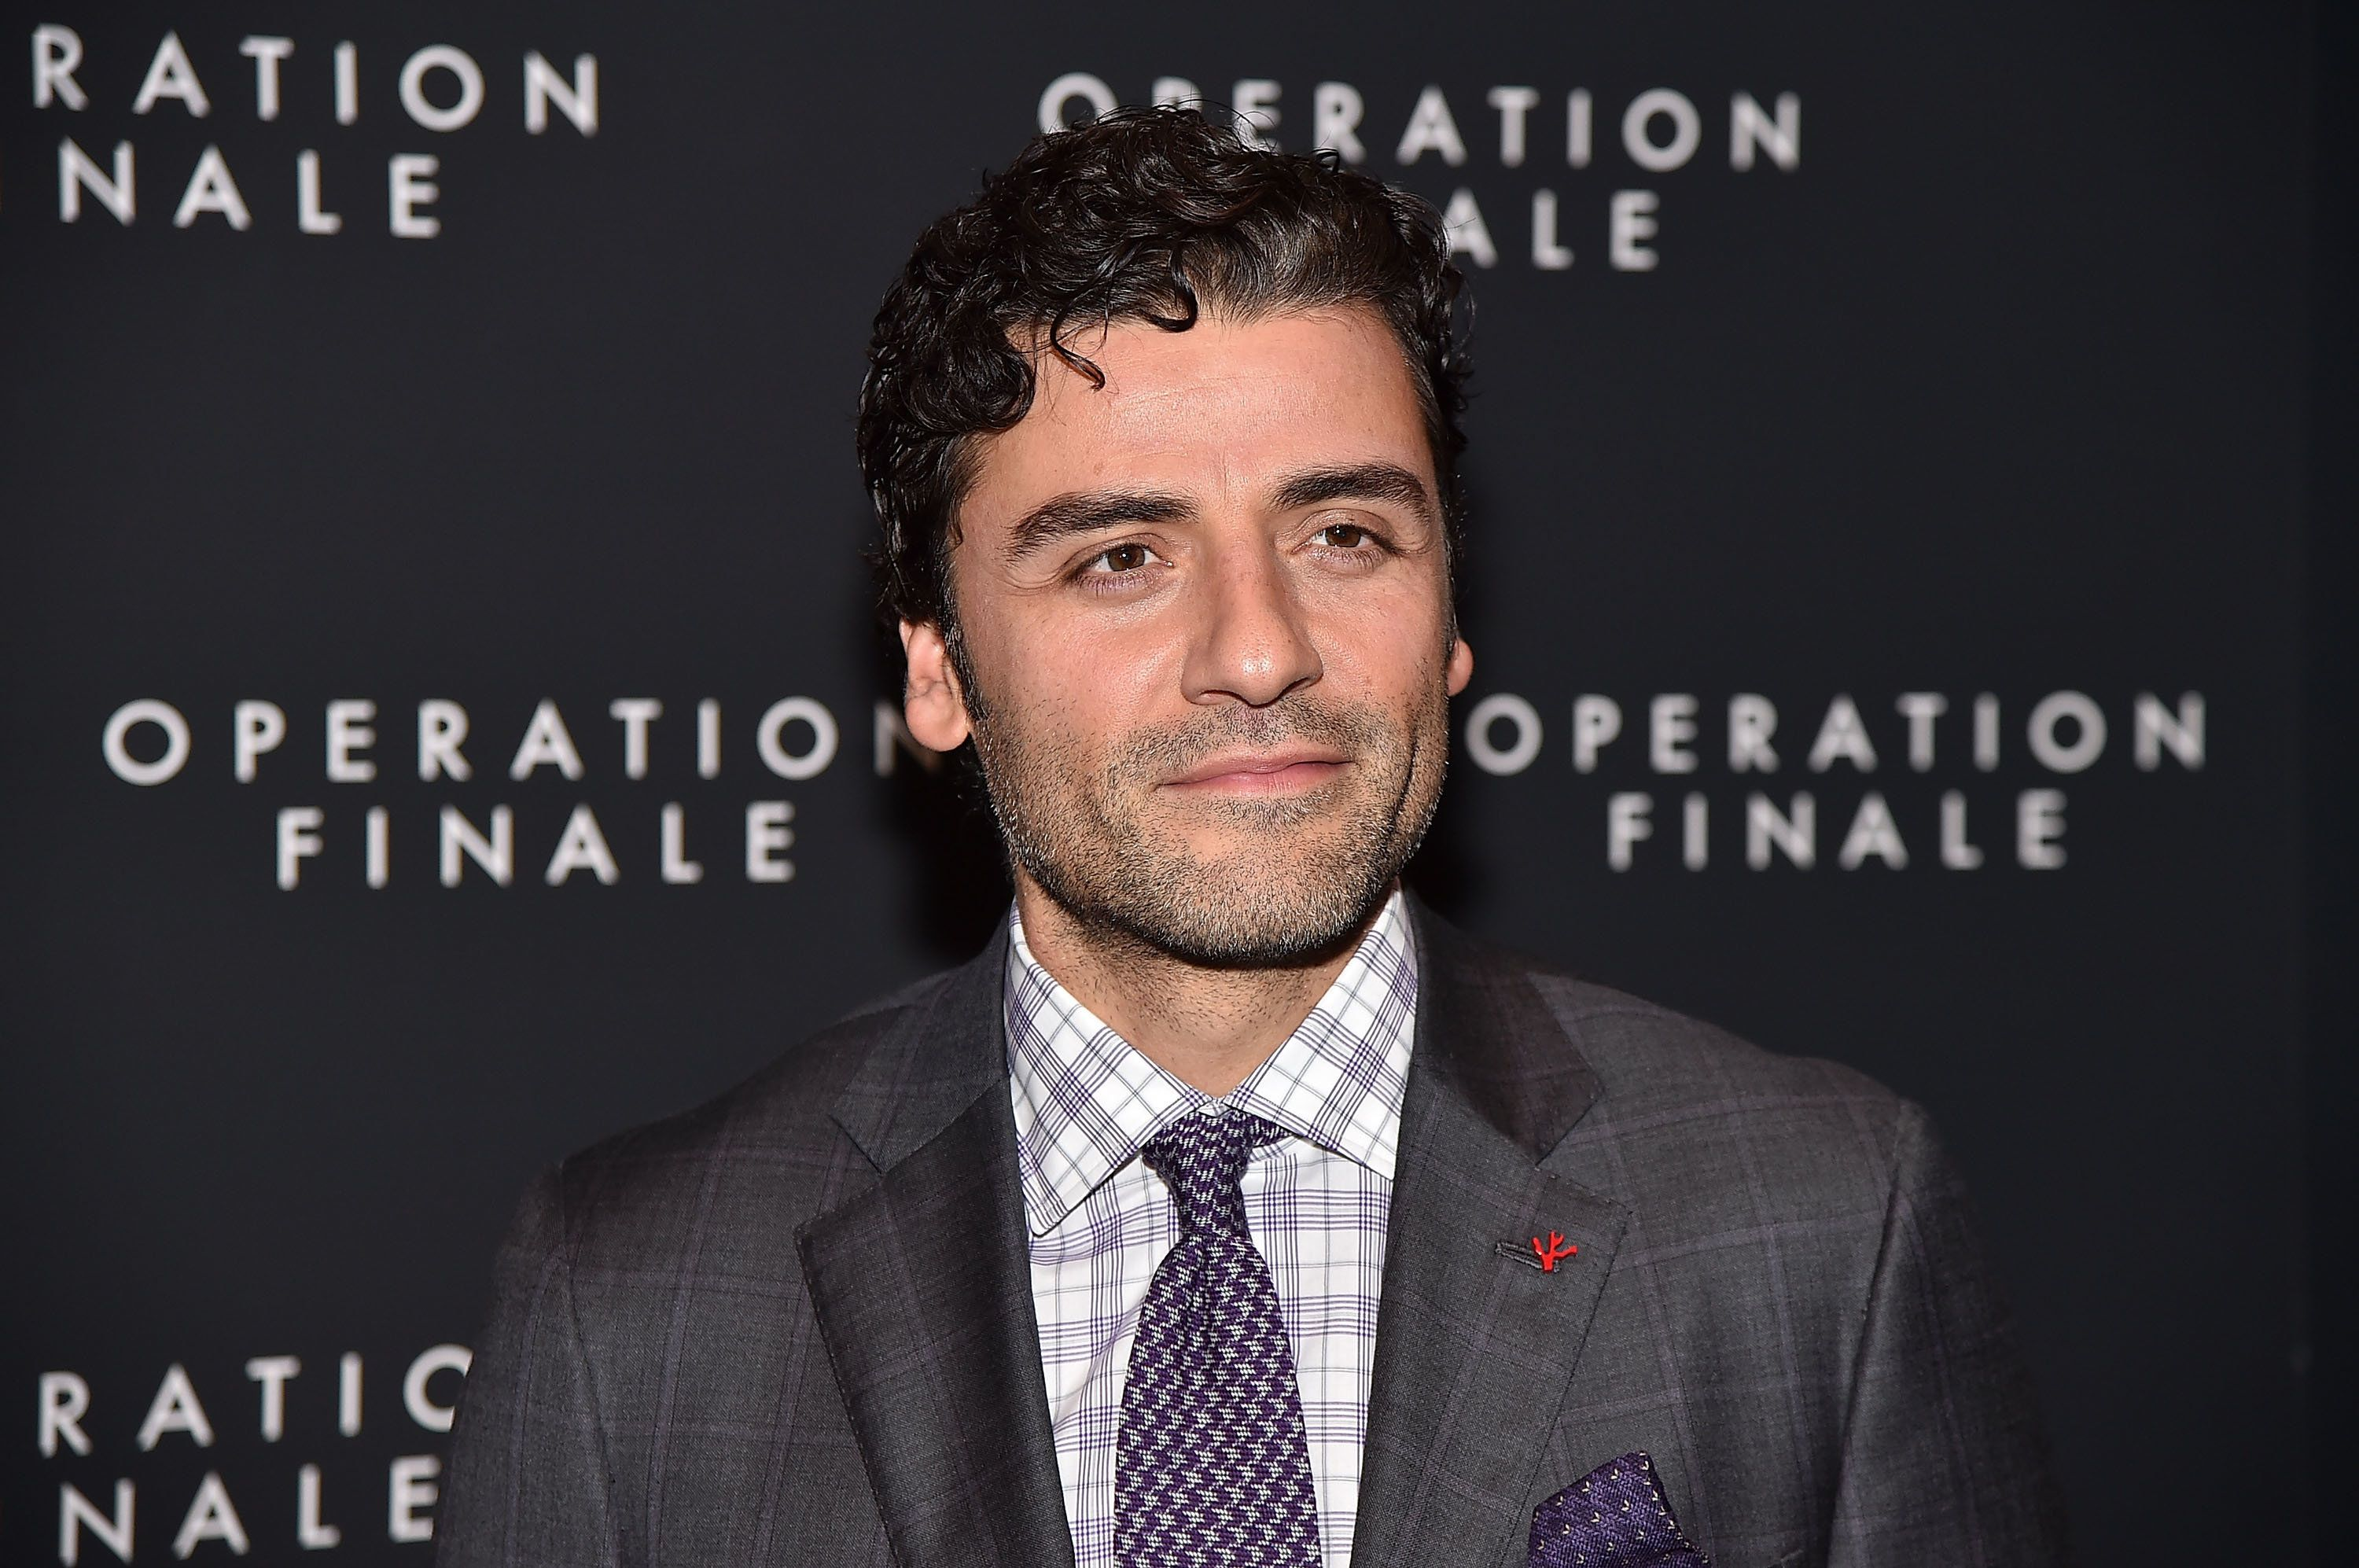 """Oscar Isaac attends the """"Operation Finale"""" premiere."""